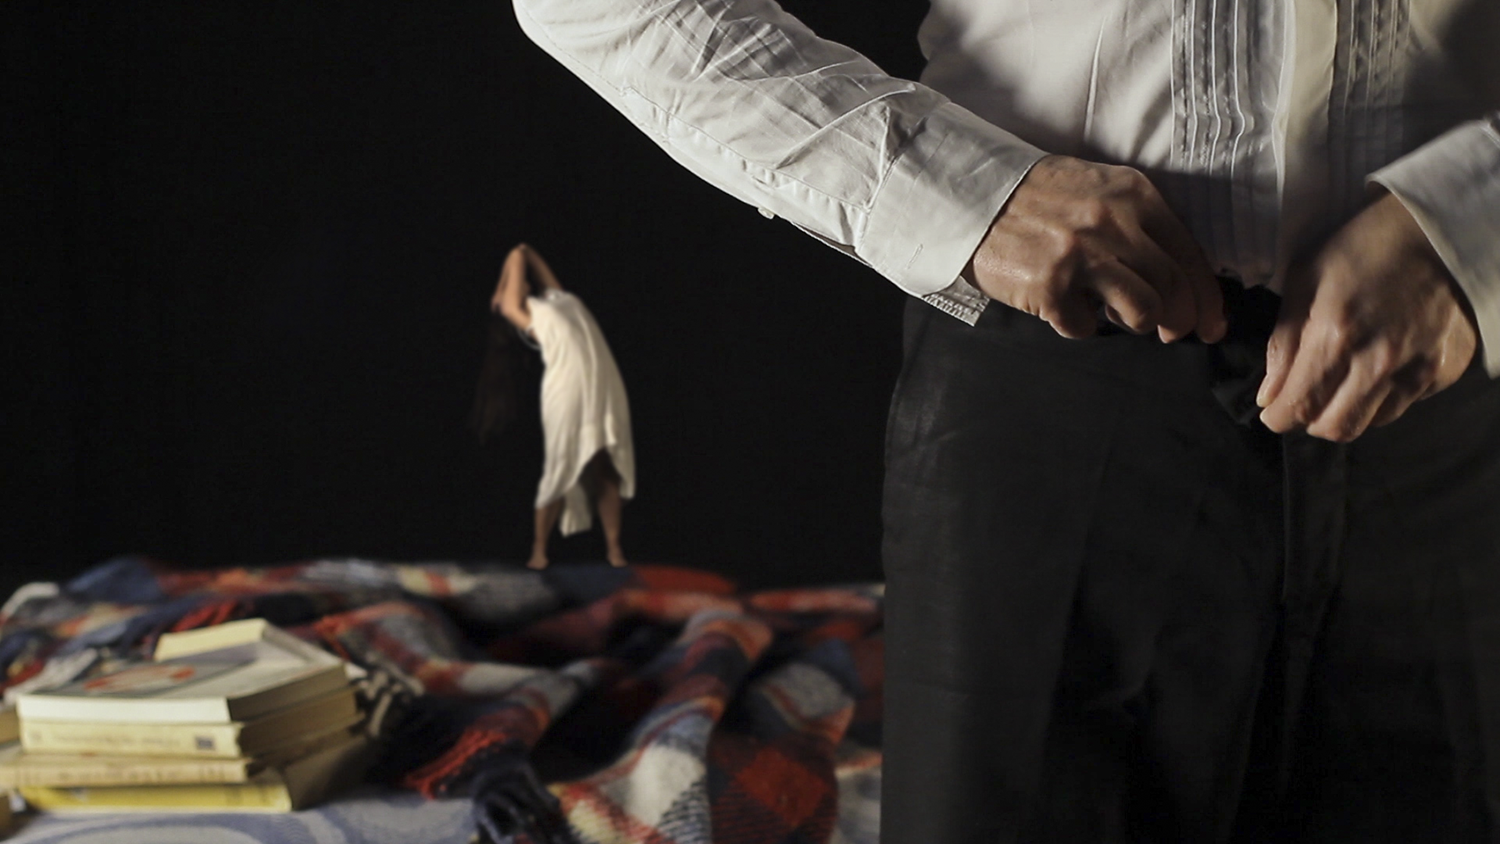 frame from scenes_8